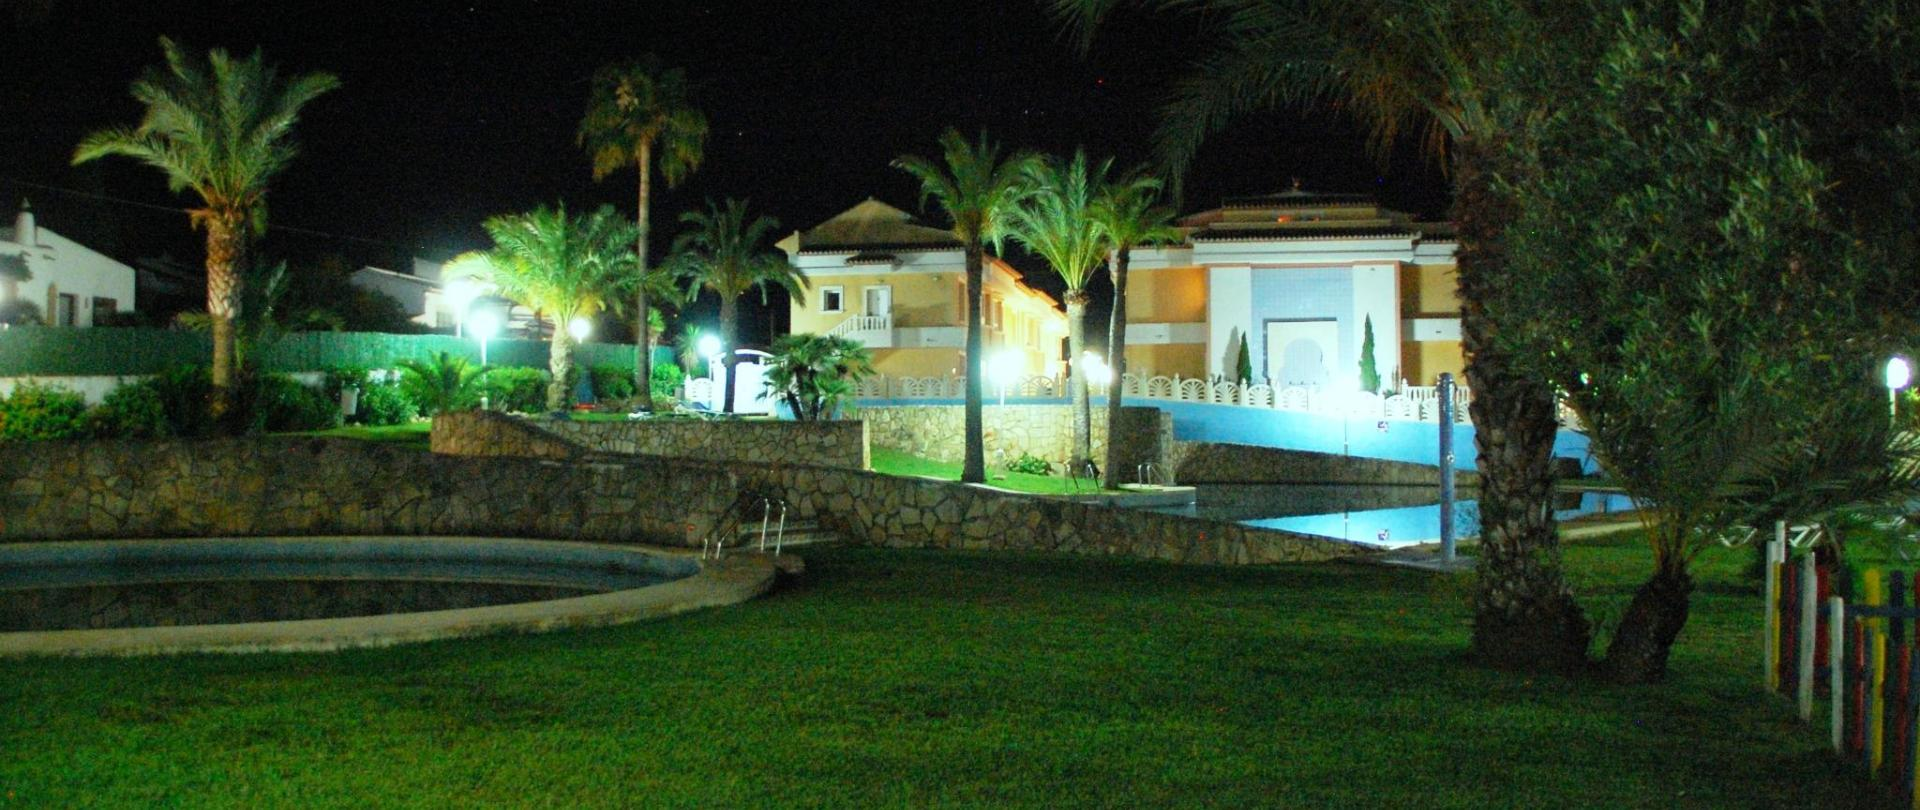 Garden Area by Night.jpg